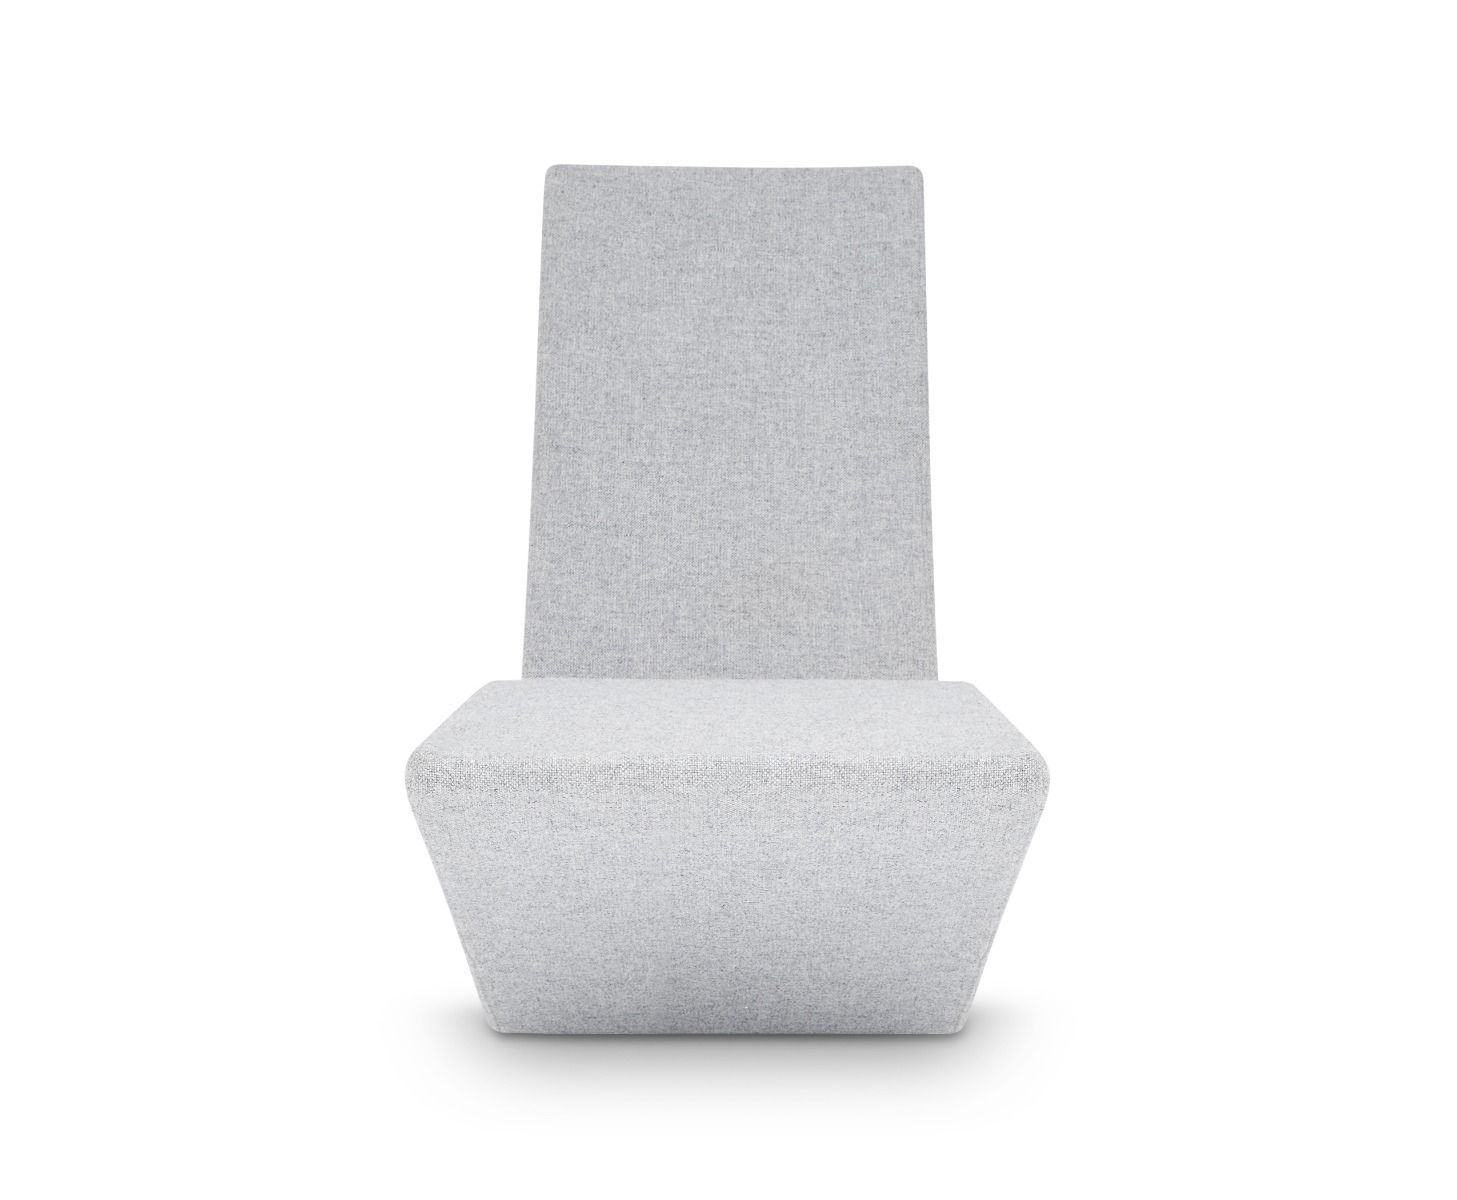 Wingback chair tom dixon -  Contemporary Fireside Chair Fabric Without Armrests Bird Tom Dixon